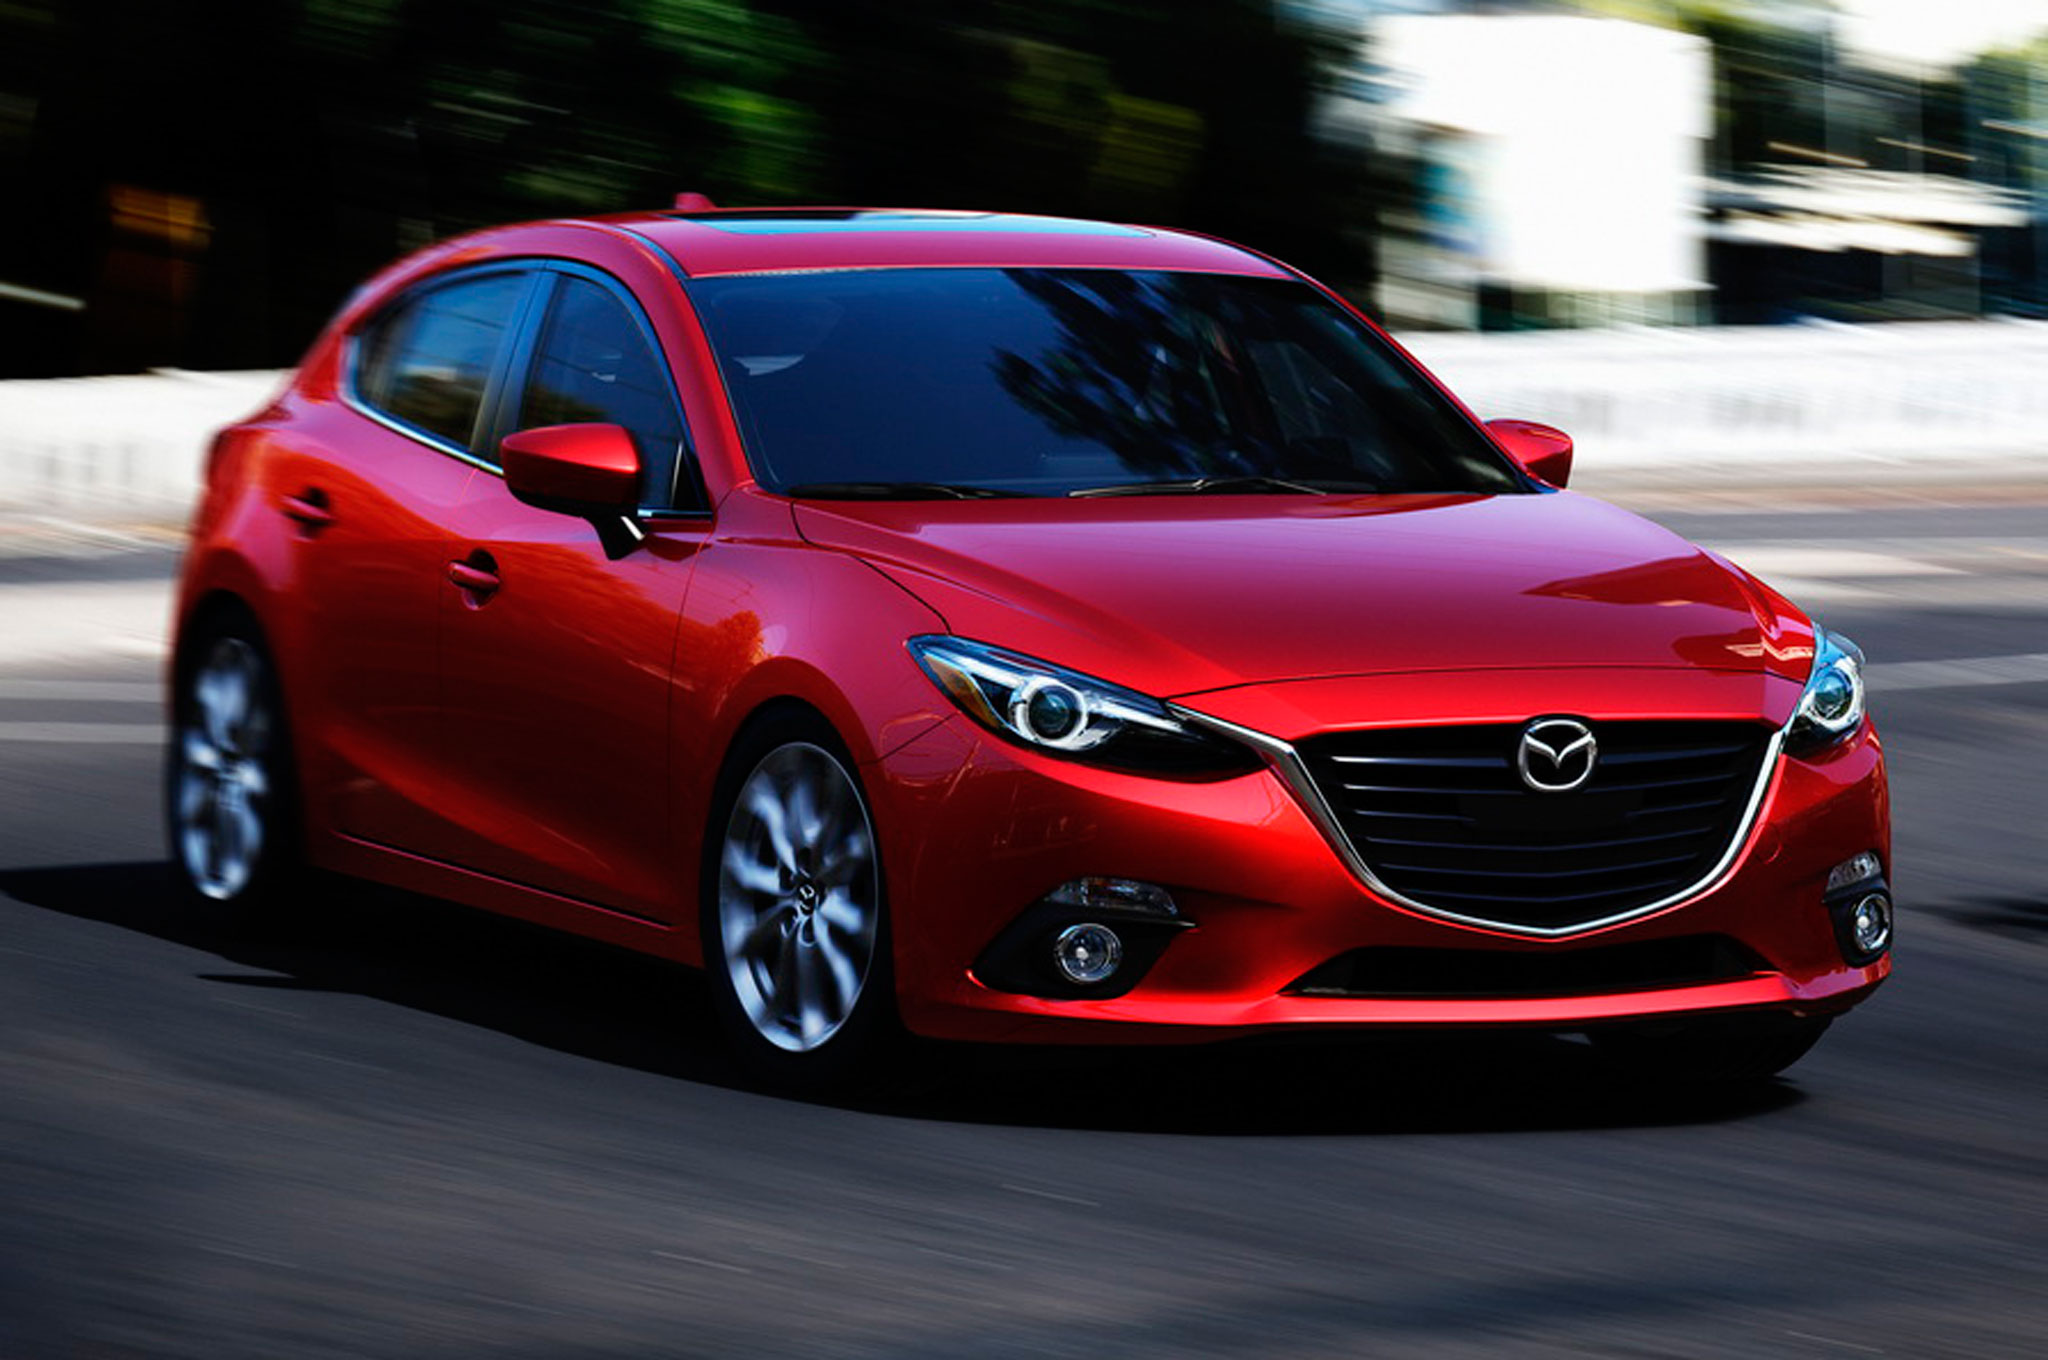 Video Behind The Scenes The 2014 Mazda3 mercial